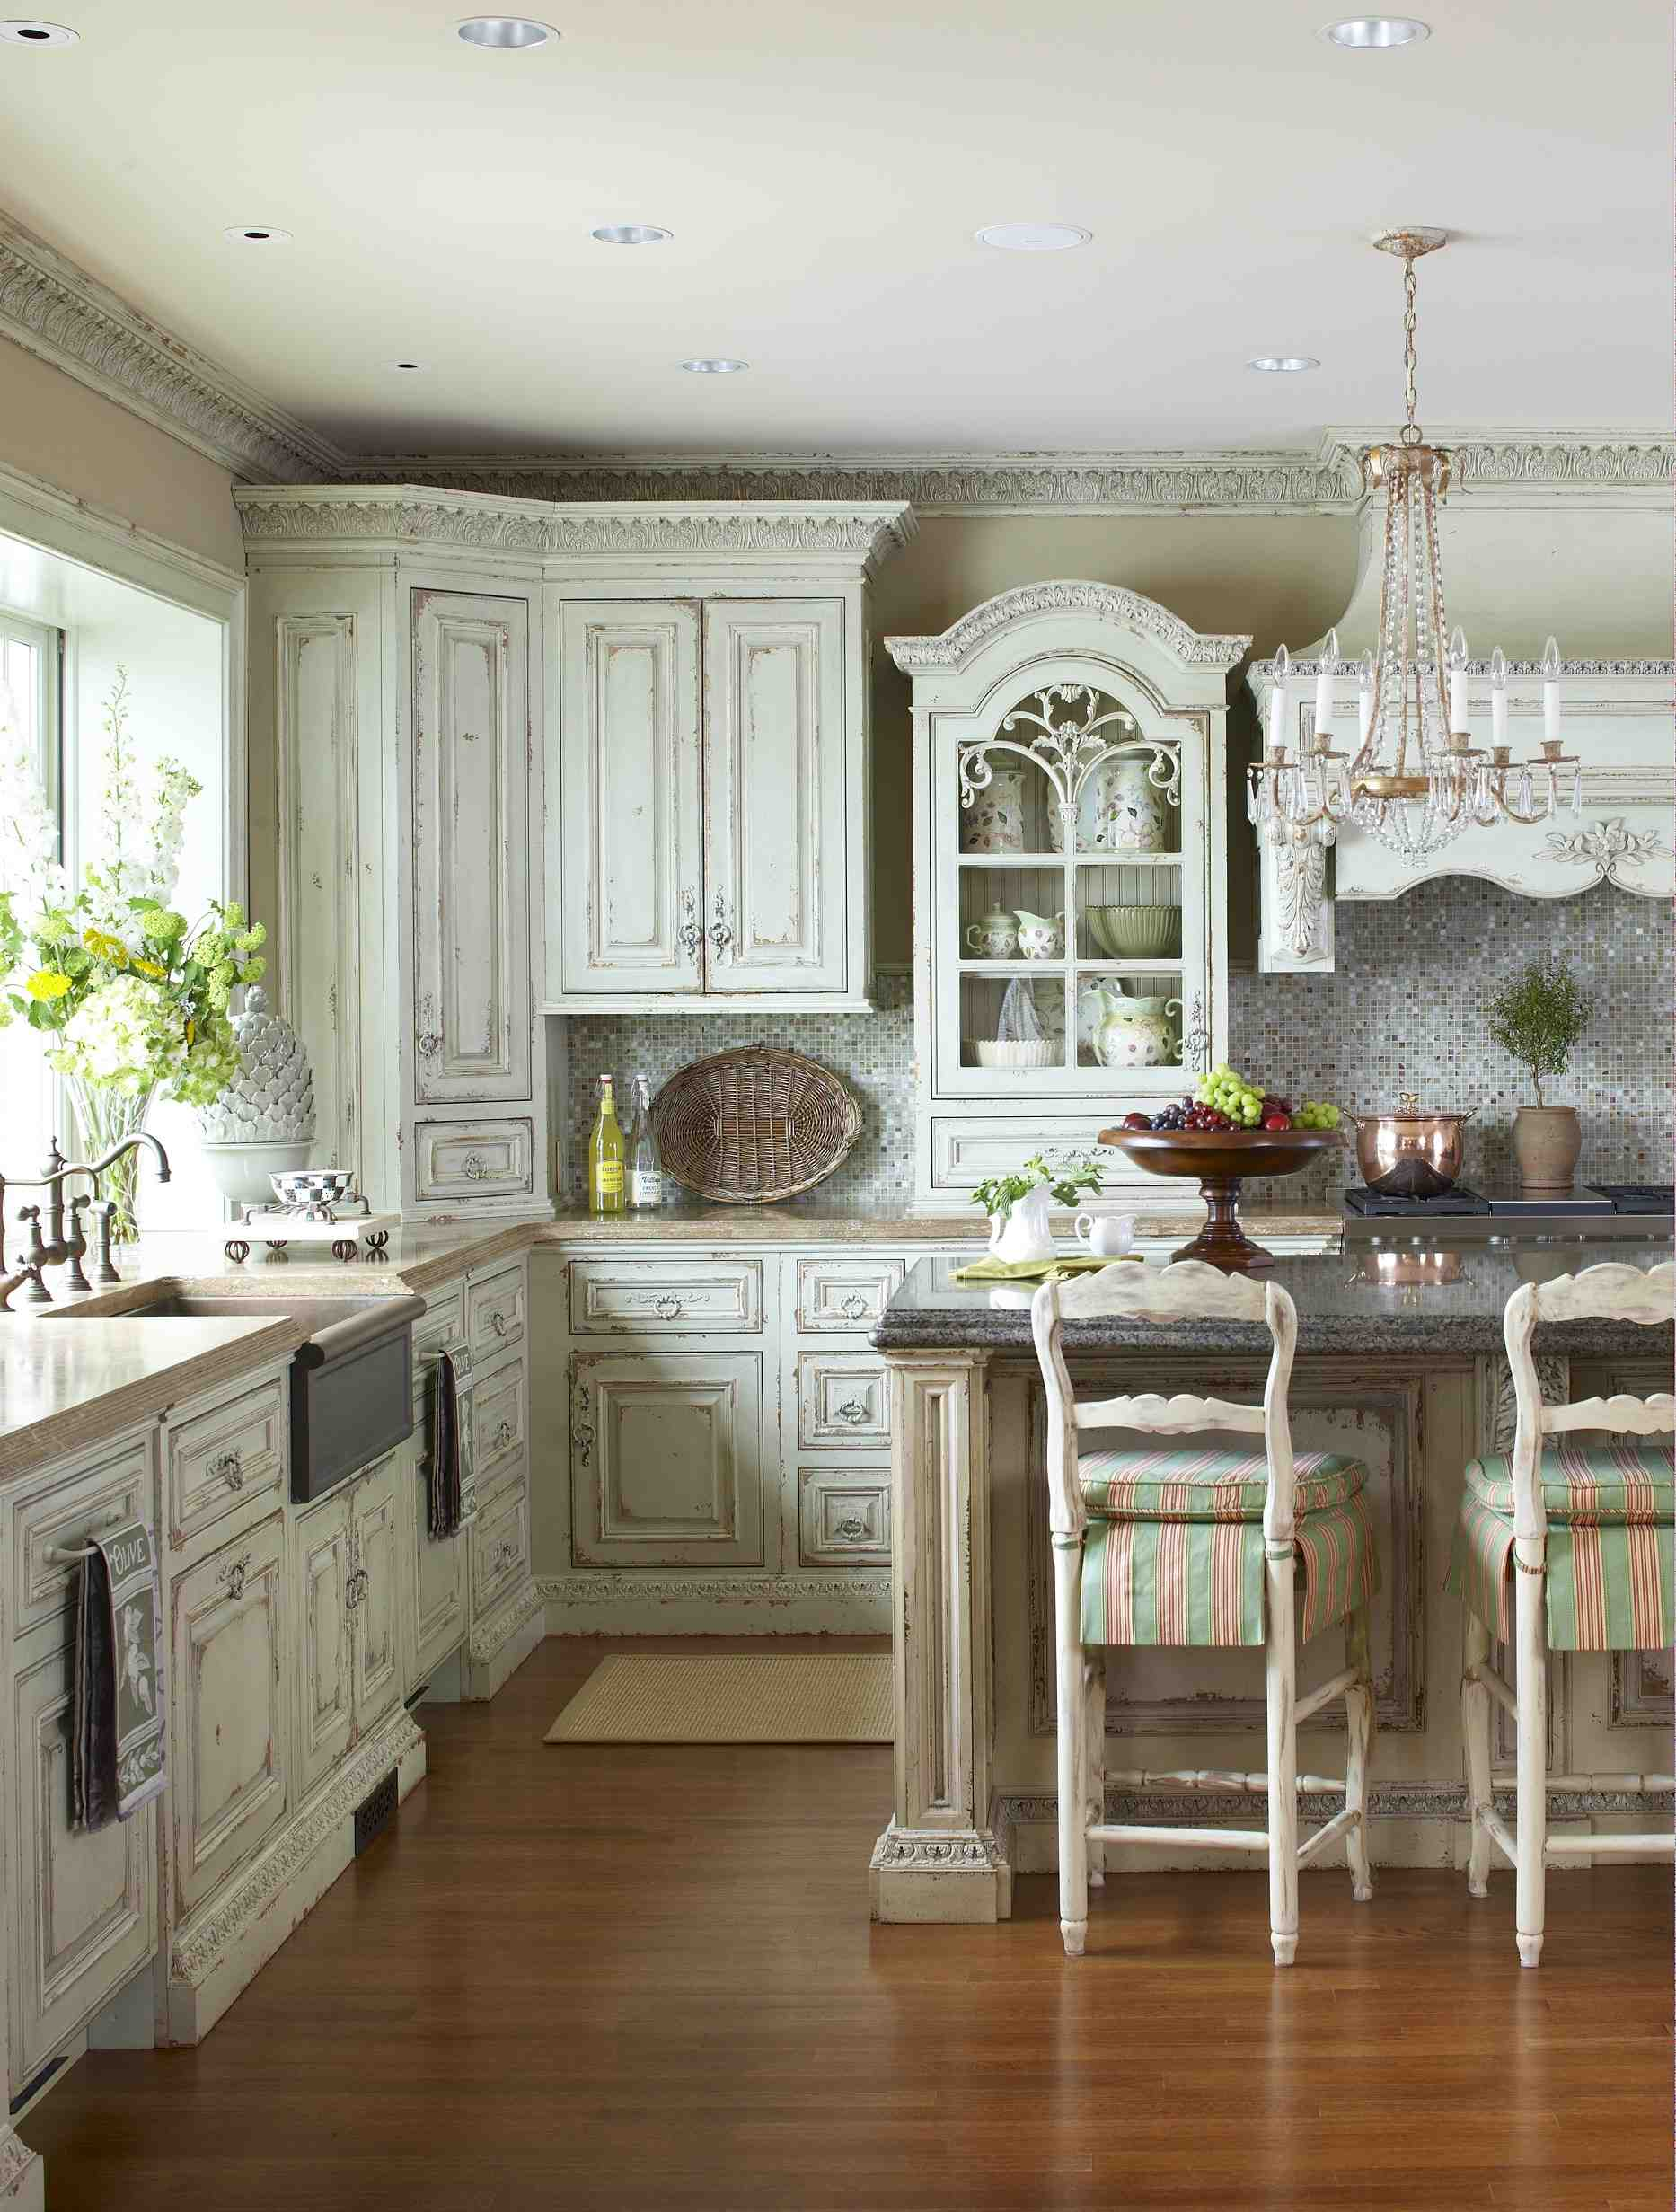 Beautiful Kitchen Ideas My Favorite Kitchens Of 2010 Stacystyle 39s Blog